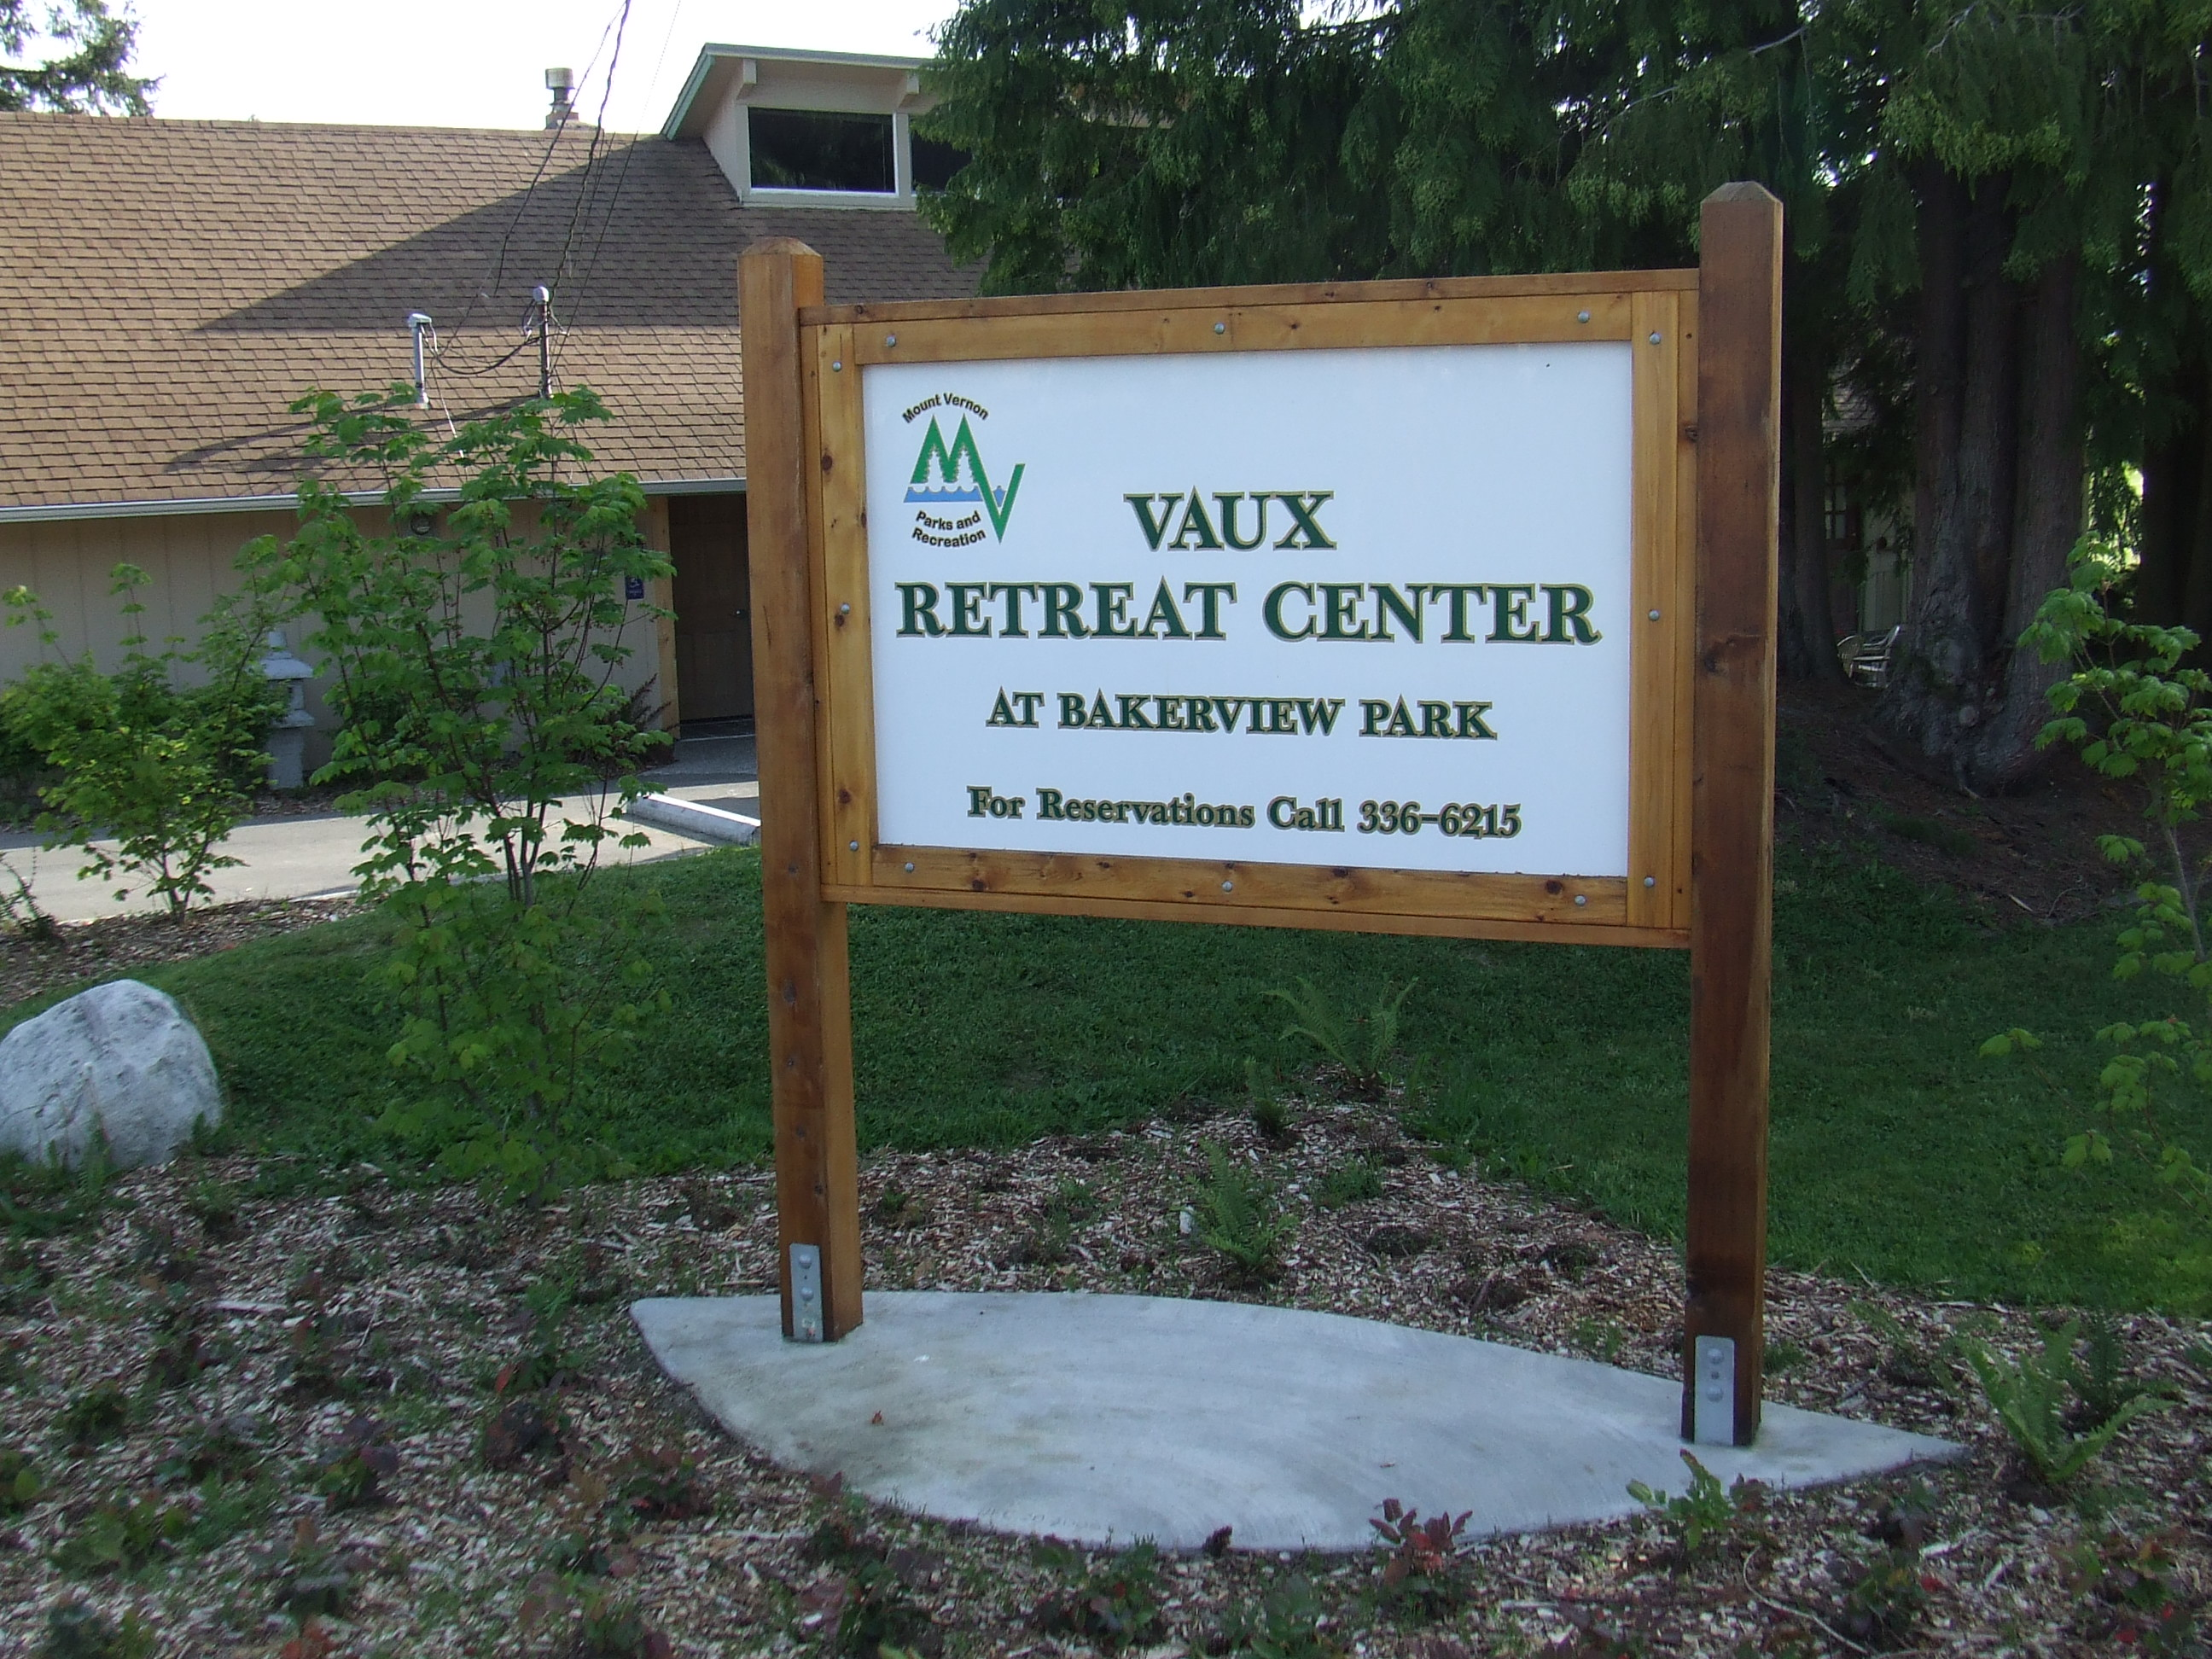 Vaux Retreat Center